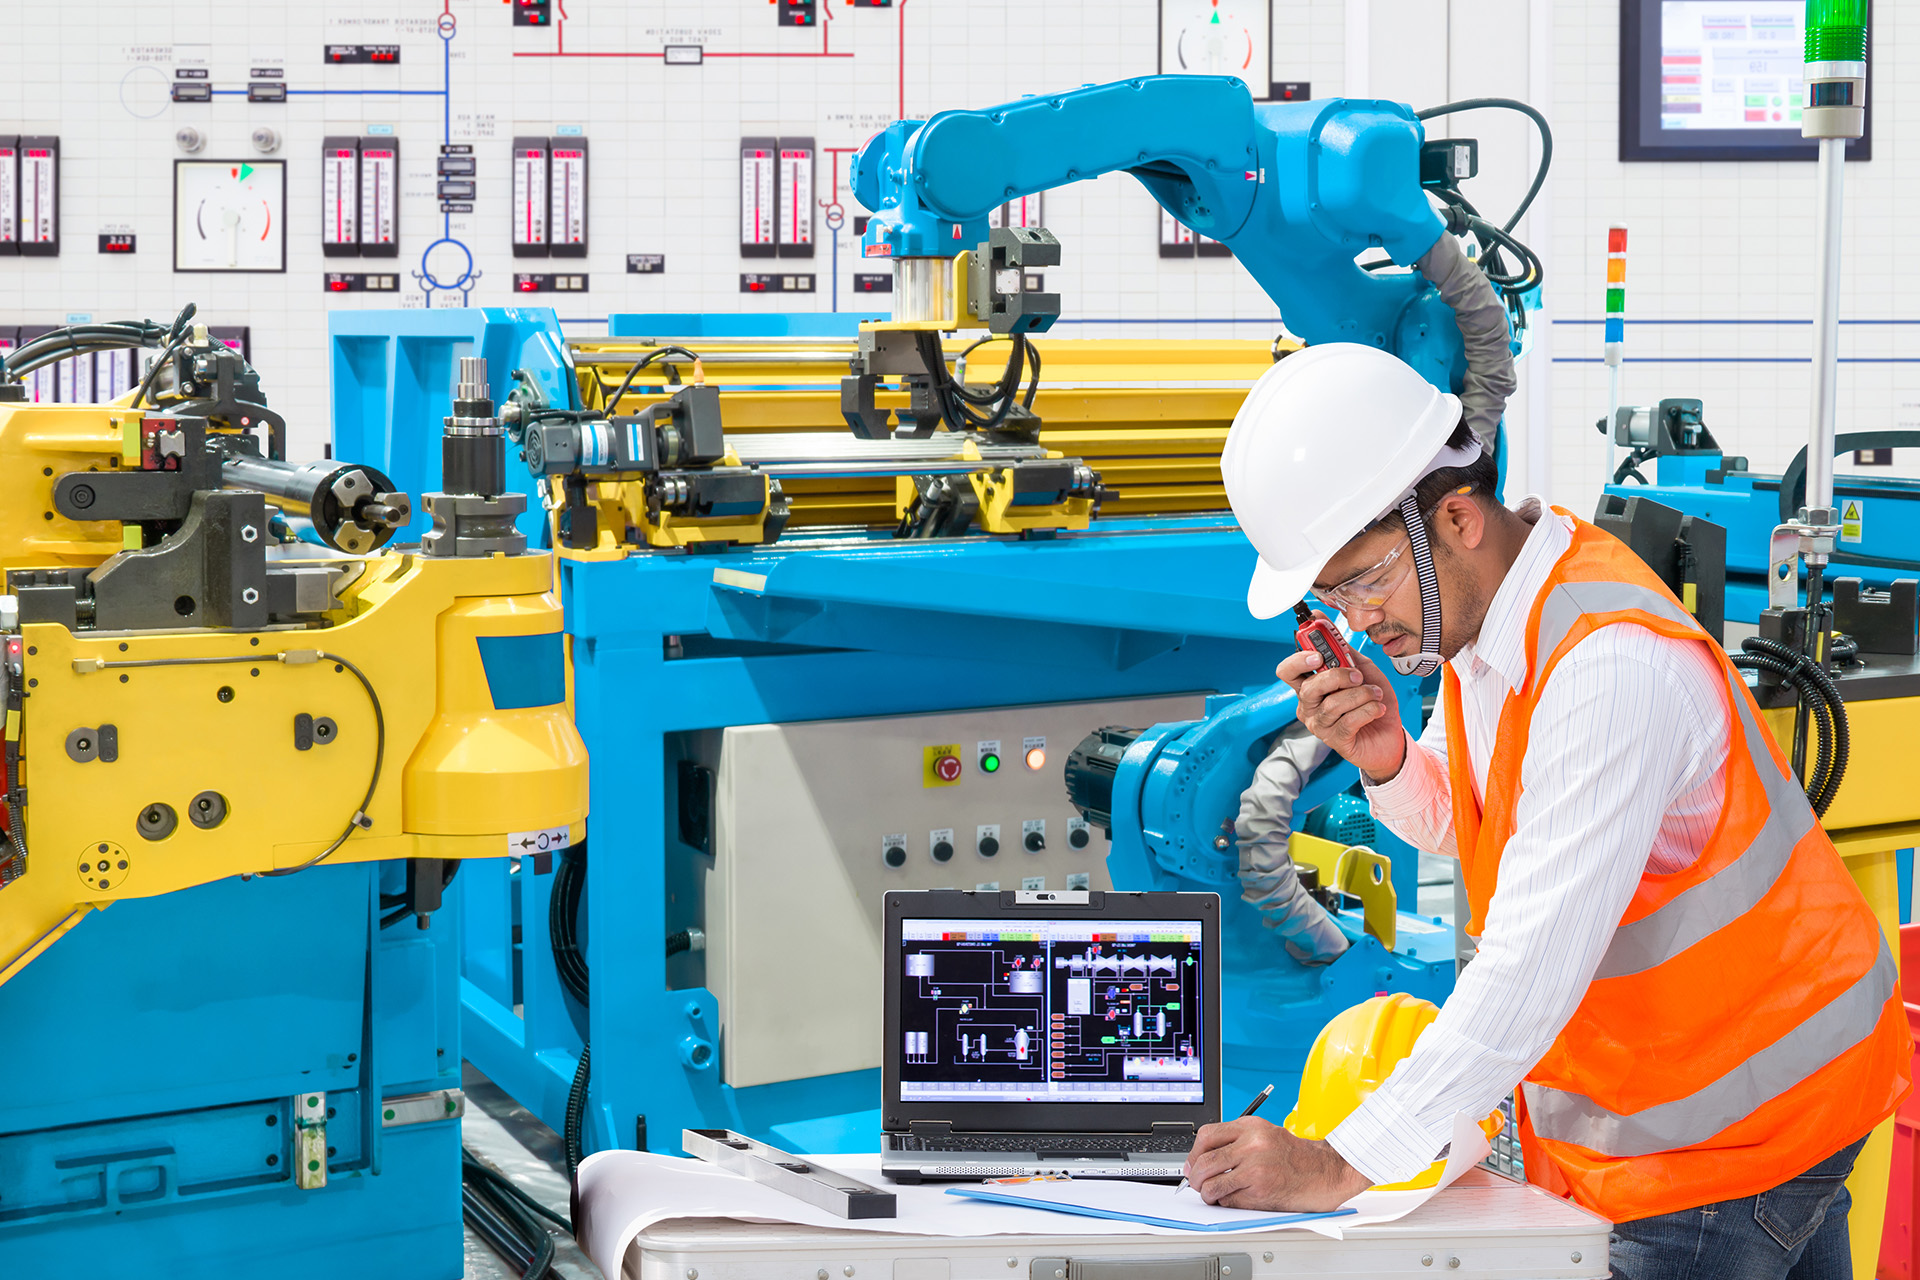 5 reasons why an ERP-driven 'digital thread' is critical for manufacturing